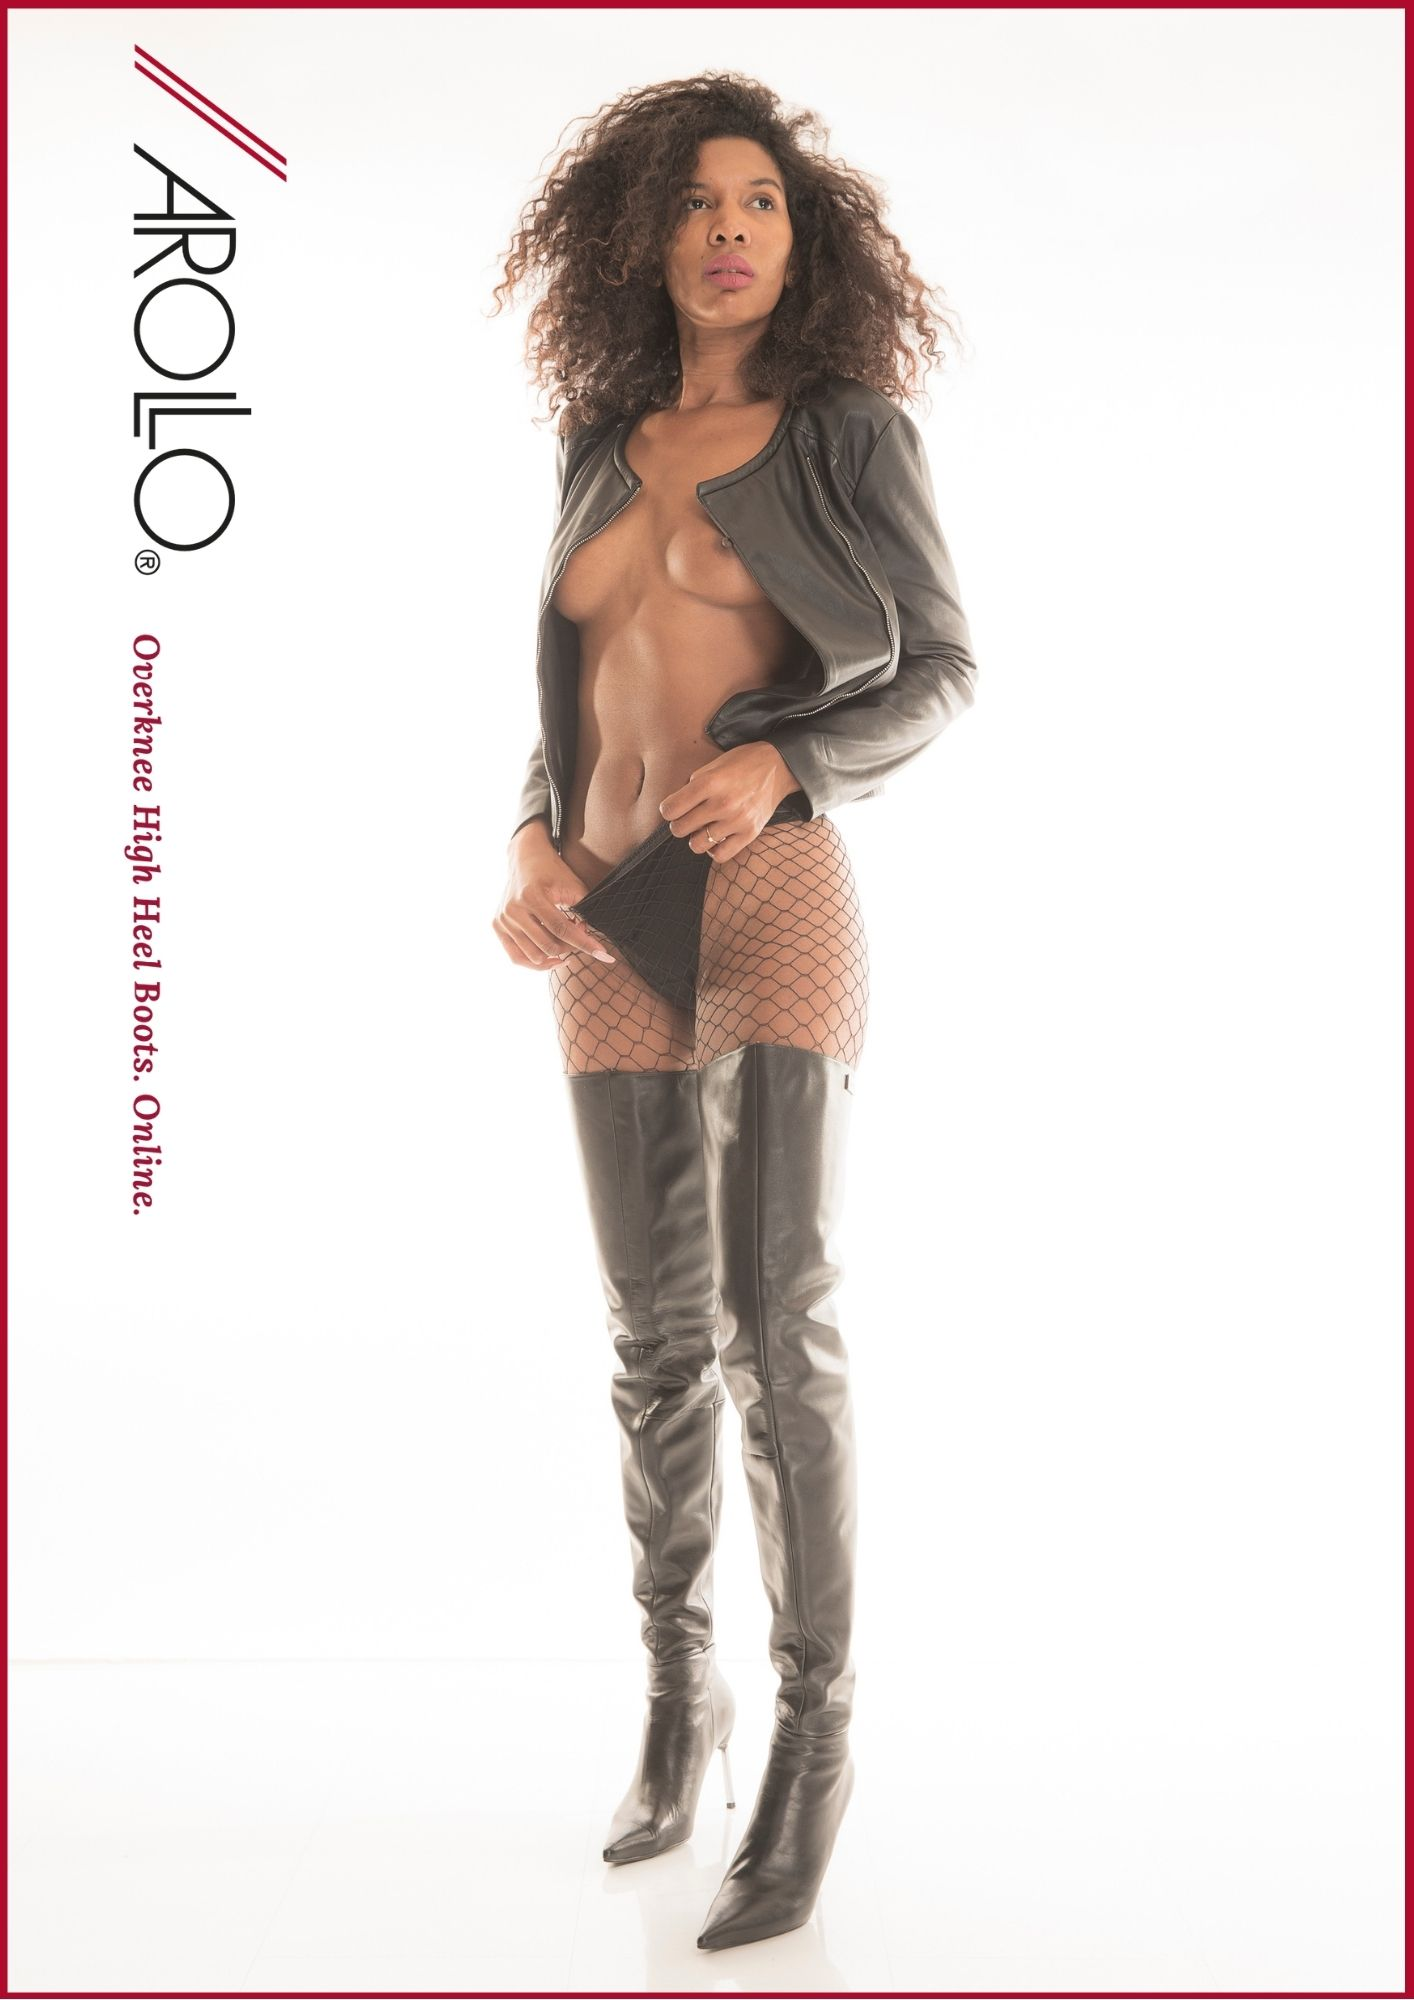 Crotch boots by Arollo